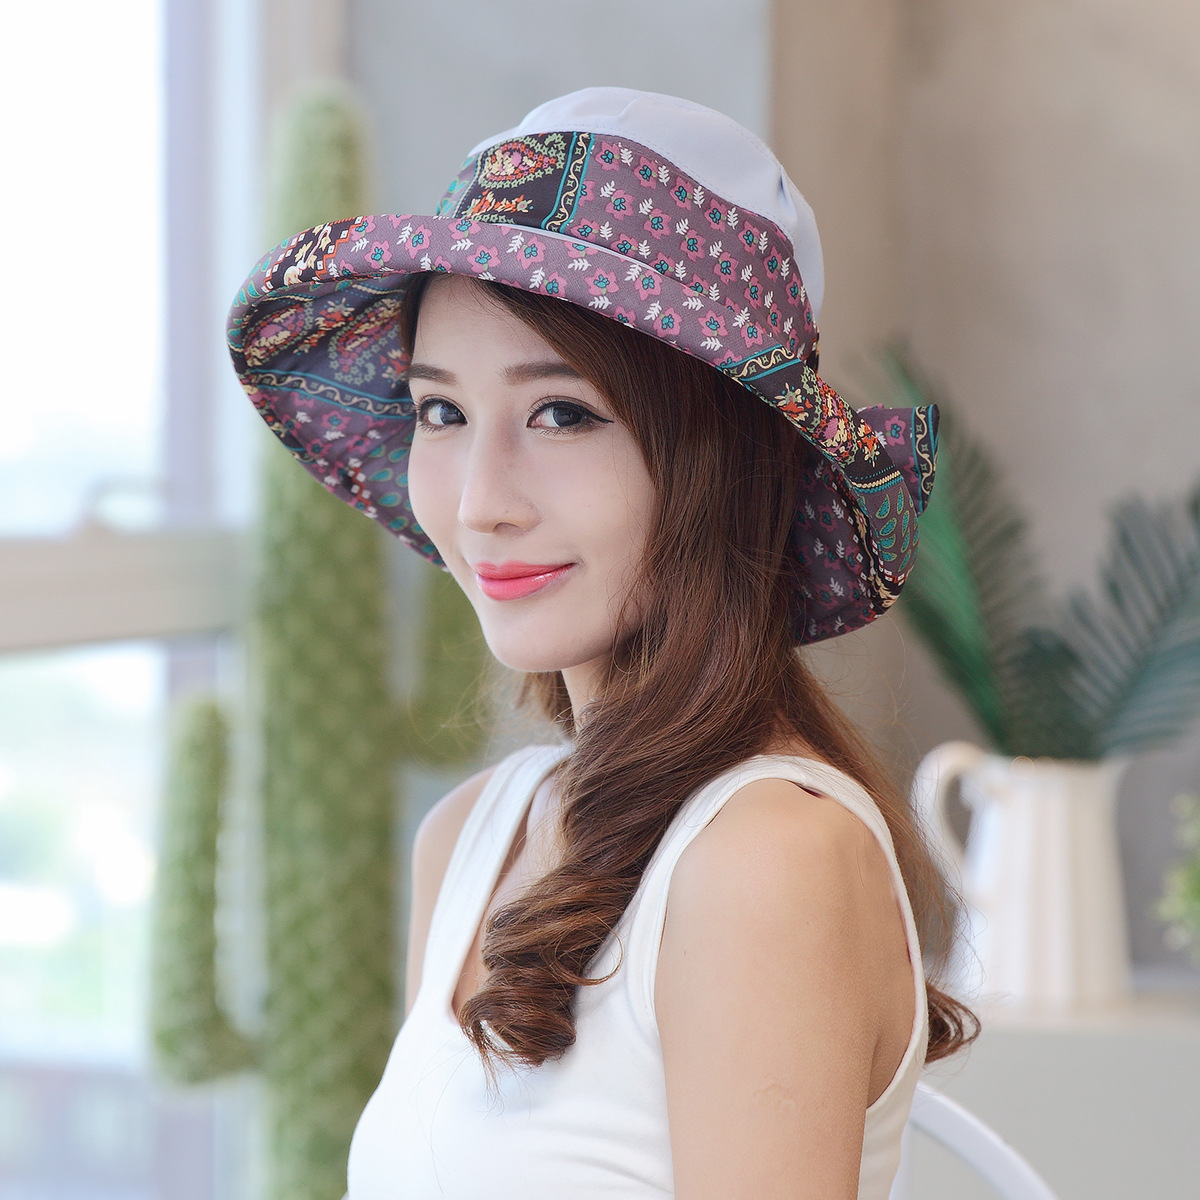 New Fashion Bohemian Style High Quality Cloth Summer Sun Hat for Women  Folding Visors Beach Hats Brand Sun Cap-in Sun Hats from Apparel  Accessories on ... 3bd10dbcefd